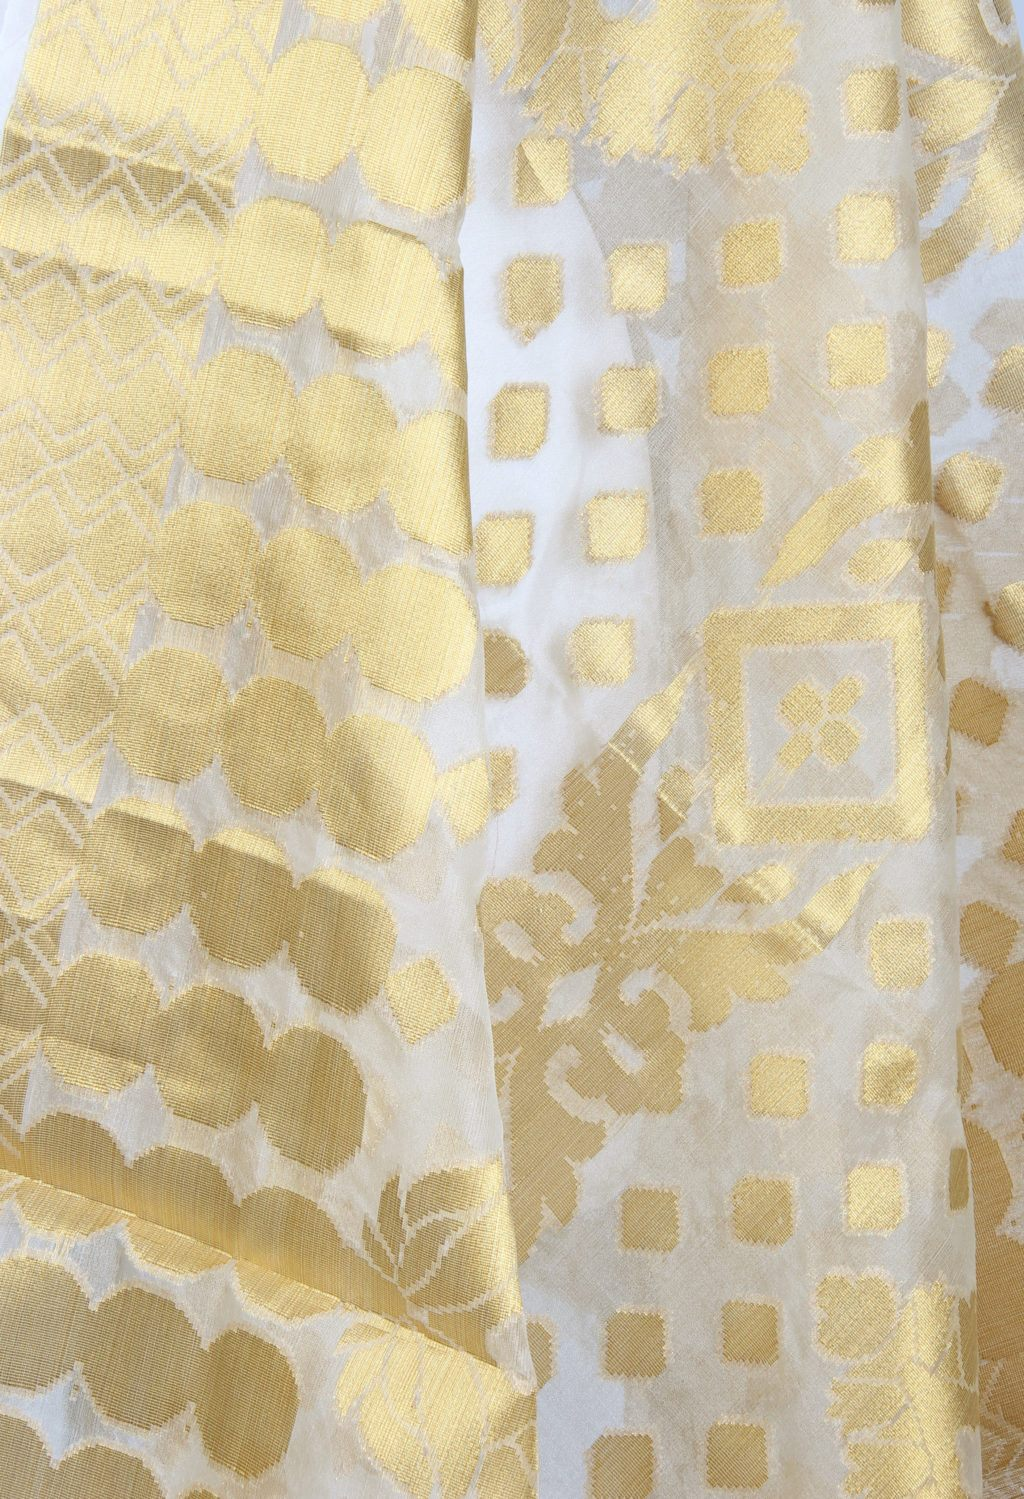 Kora art silk Banarasi dupatta with geometrical shape motifs and jaal (2) Close up